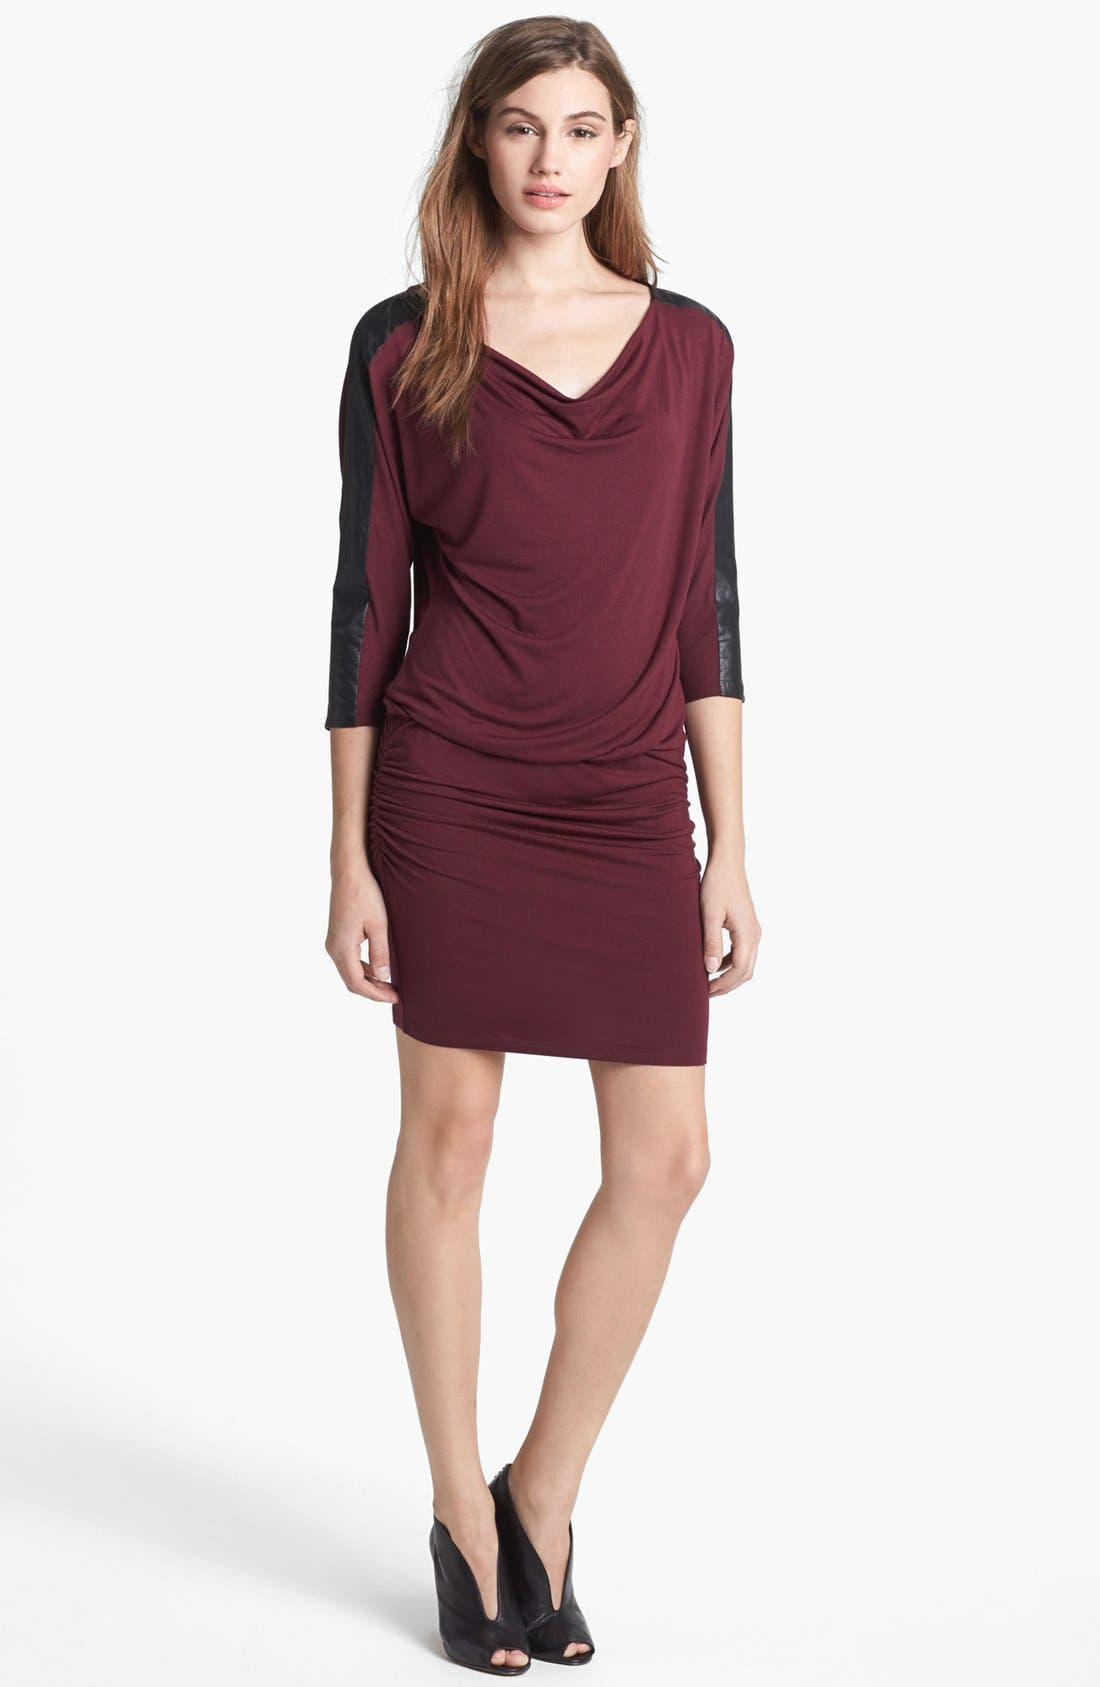 Alternate Image 1 Selected - C & C California Faux Leather & Ponte Knit Dress